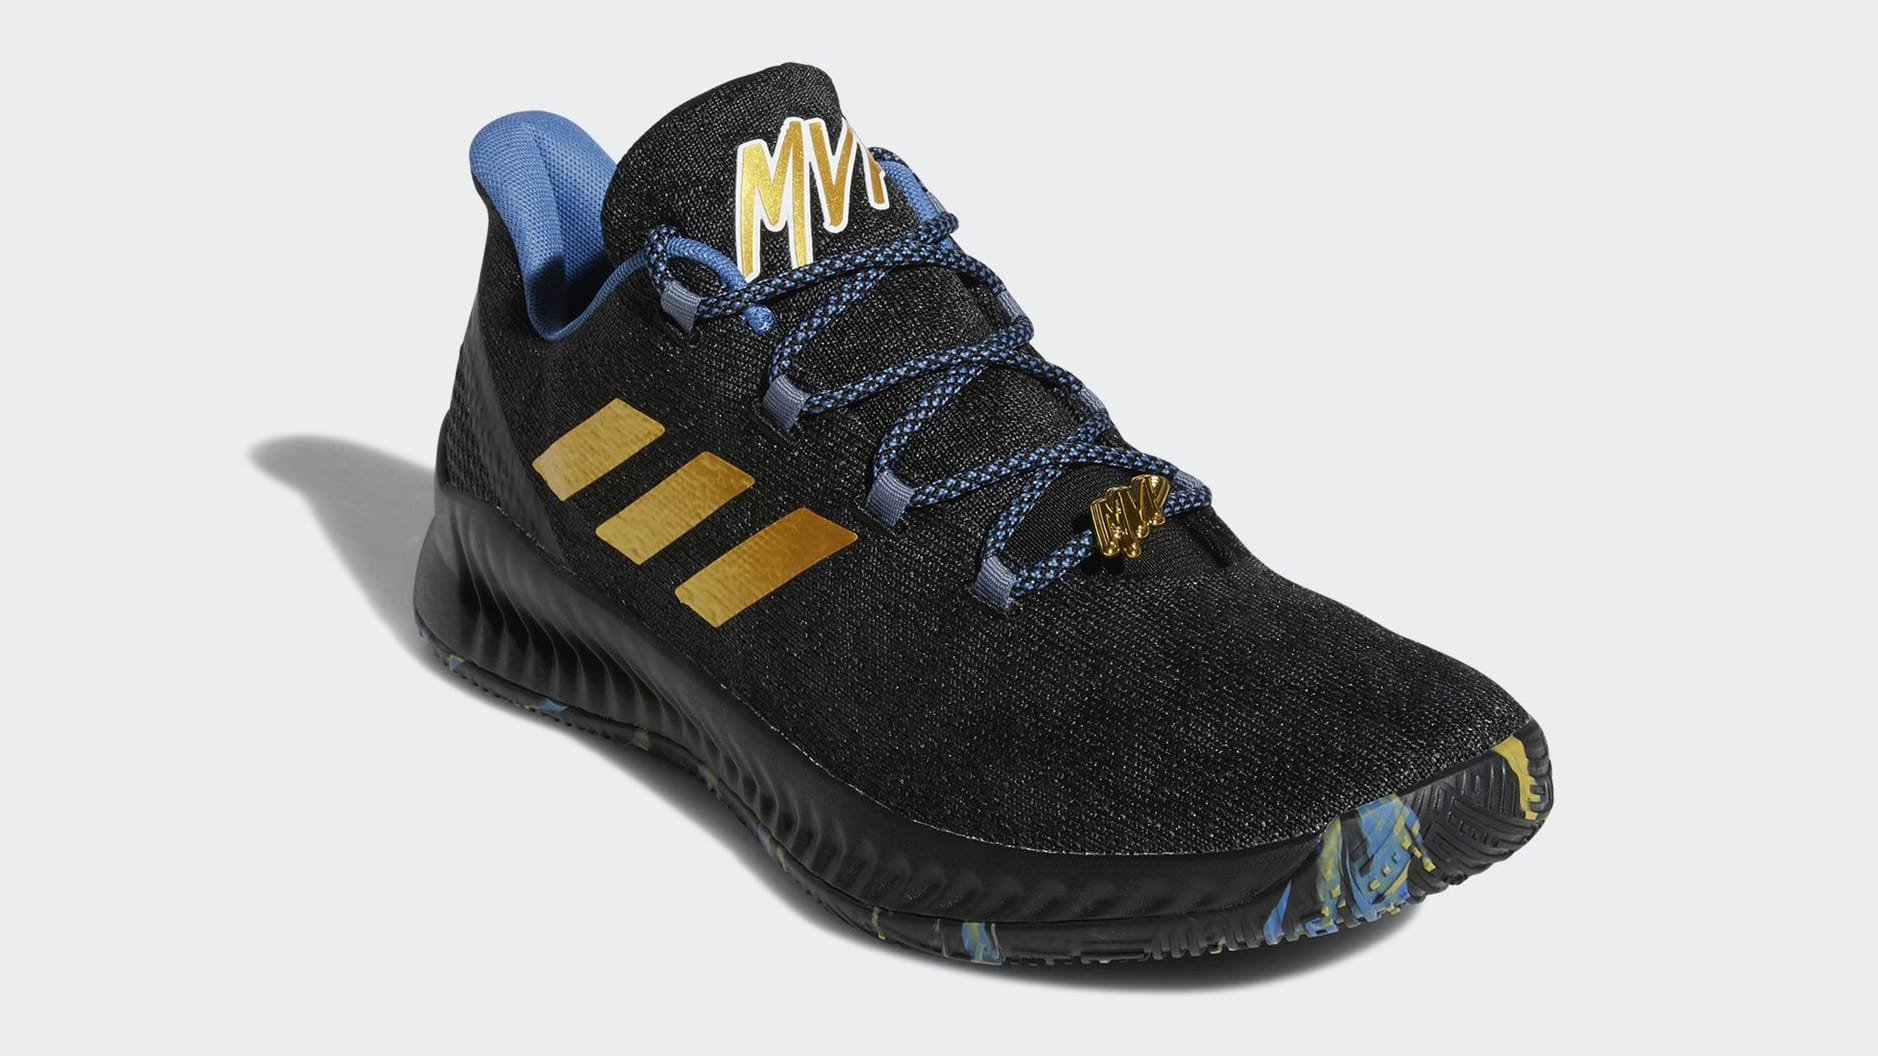 Adidas Harden Vol. 2 'MVP' Collection | Sole Collector